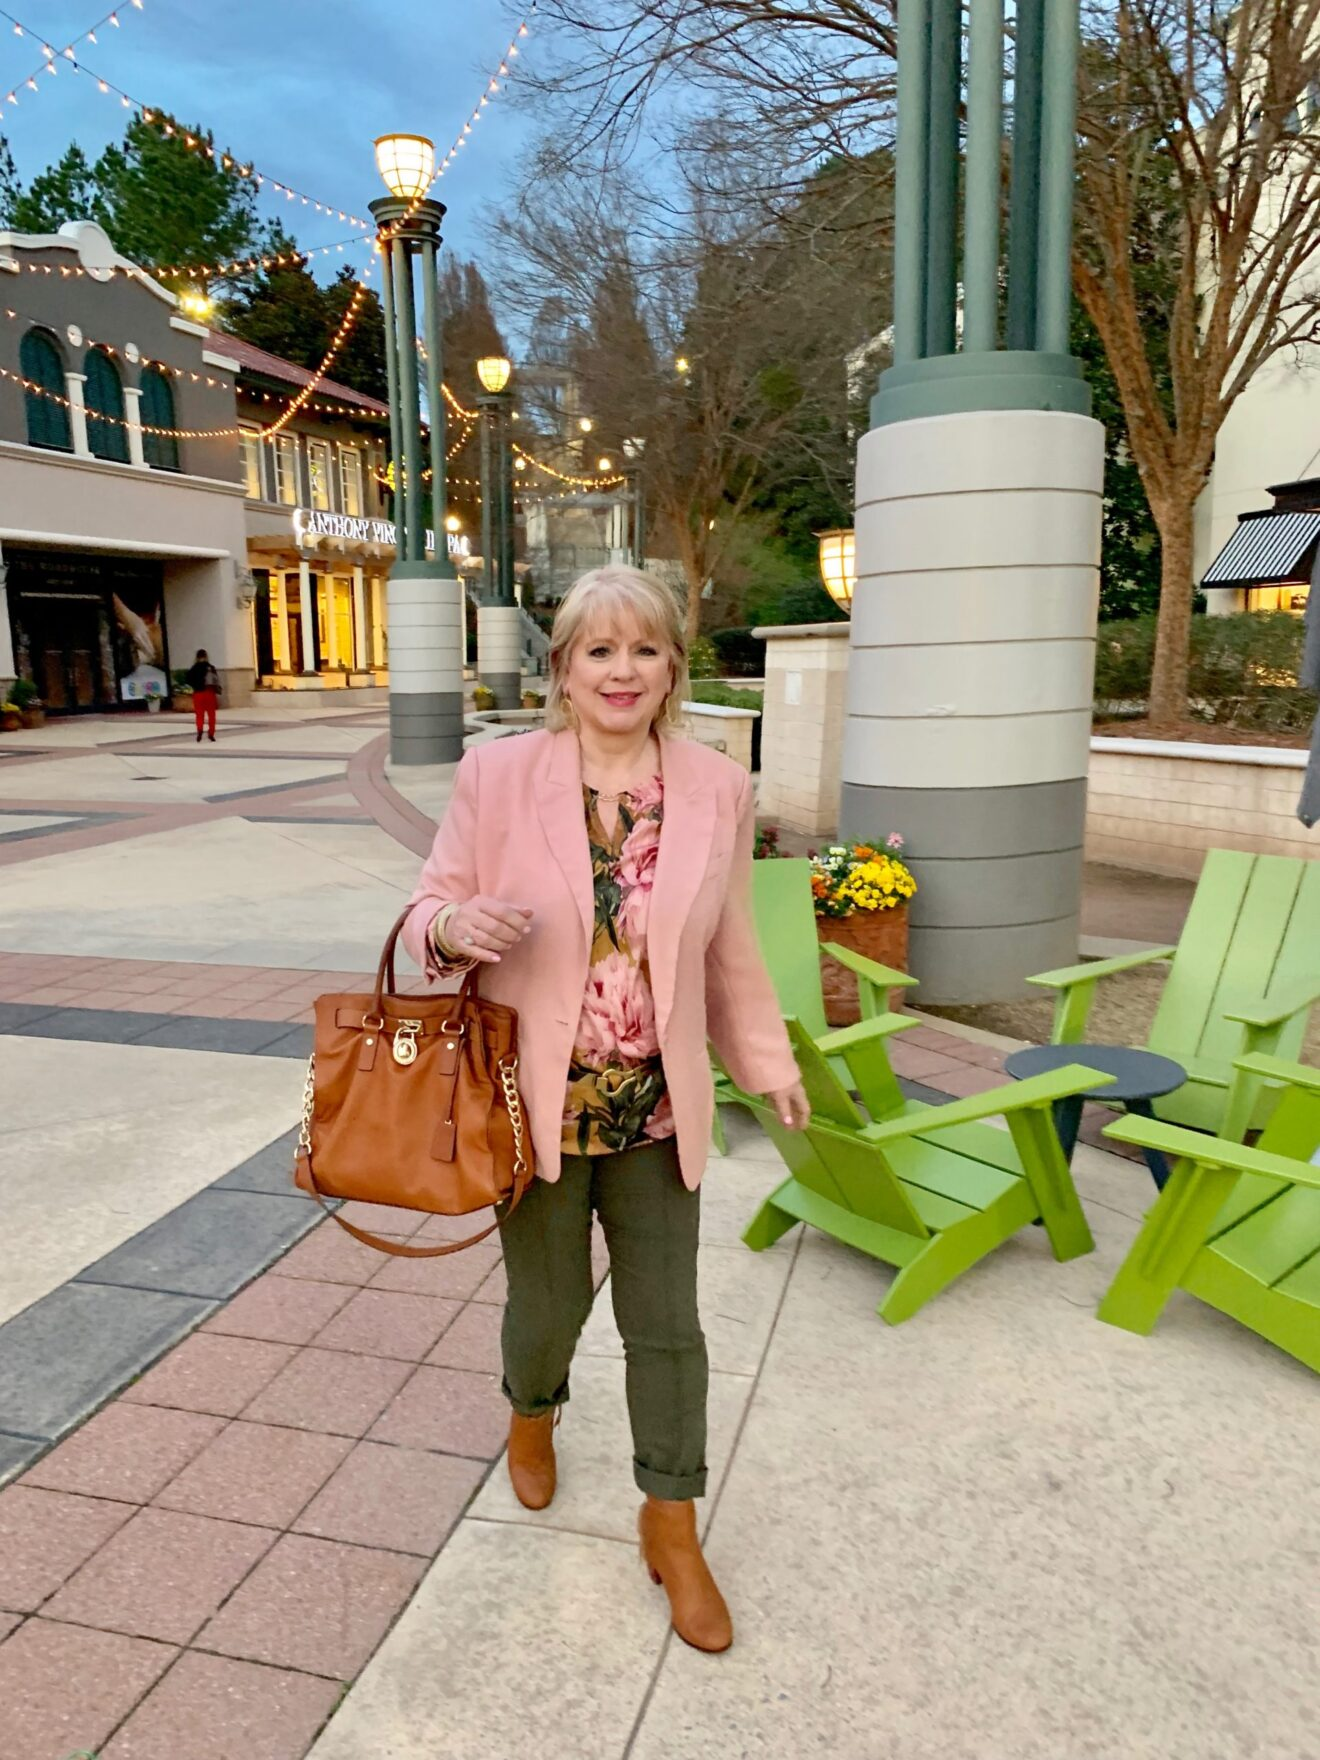 Style Story Interview Classy Colorful Confidence @StyleShennanigans Shannon Holmes Fashion Over 50 60 Confident Earthy Pink and Brown Floral Outfit Story Behind The Cloth scaled